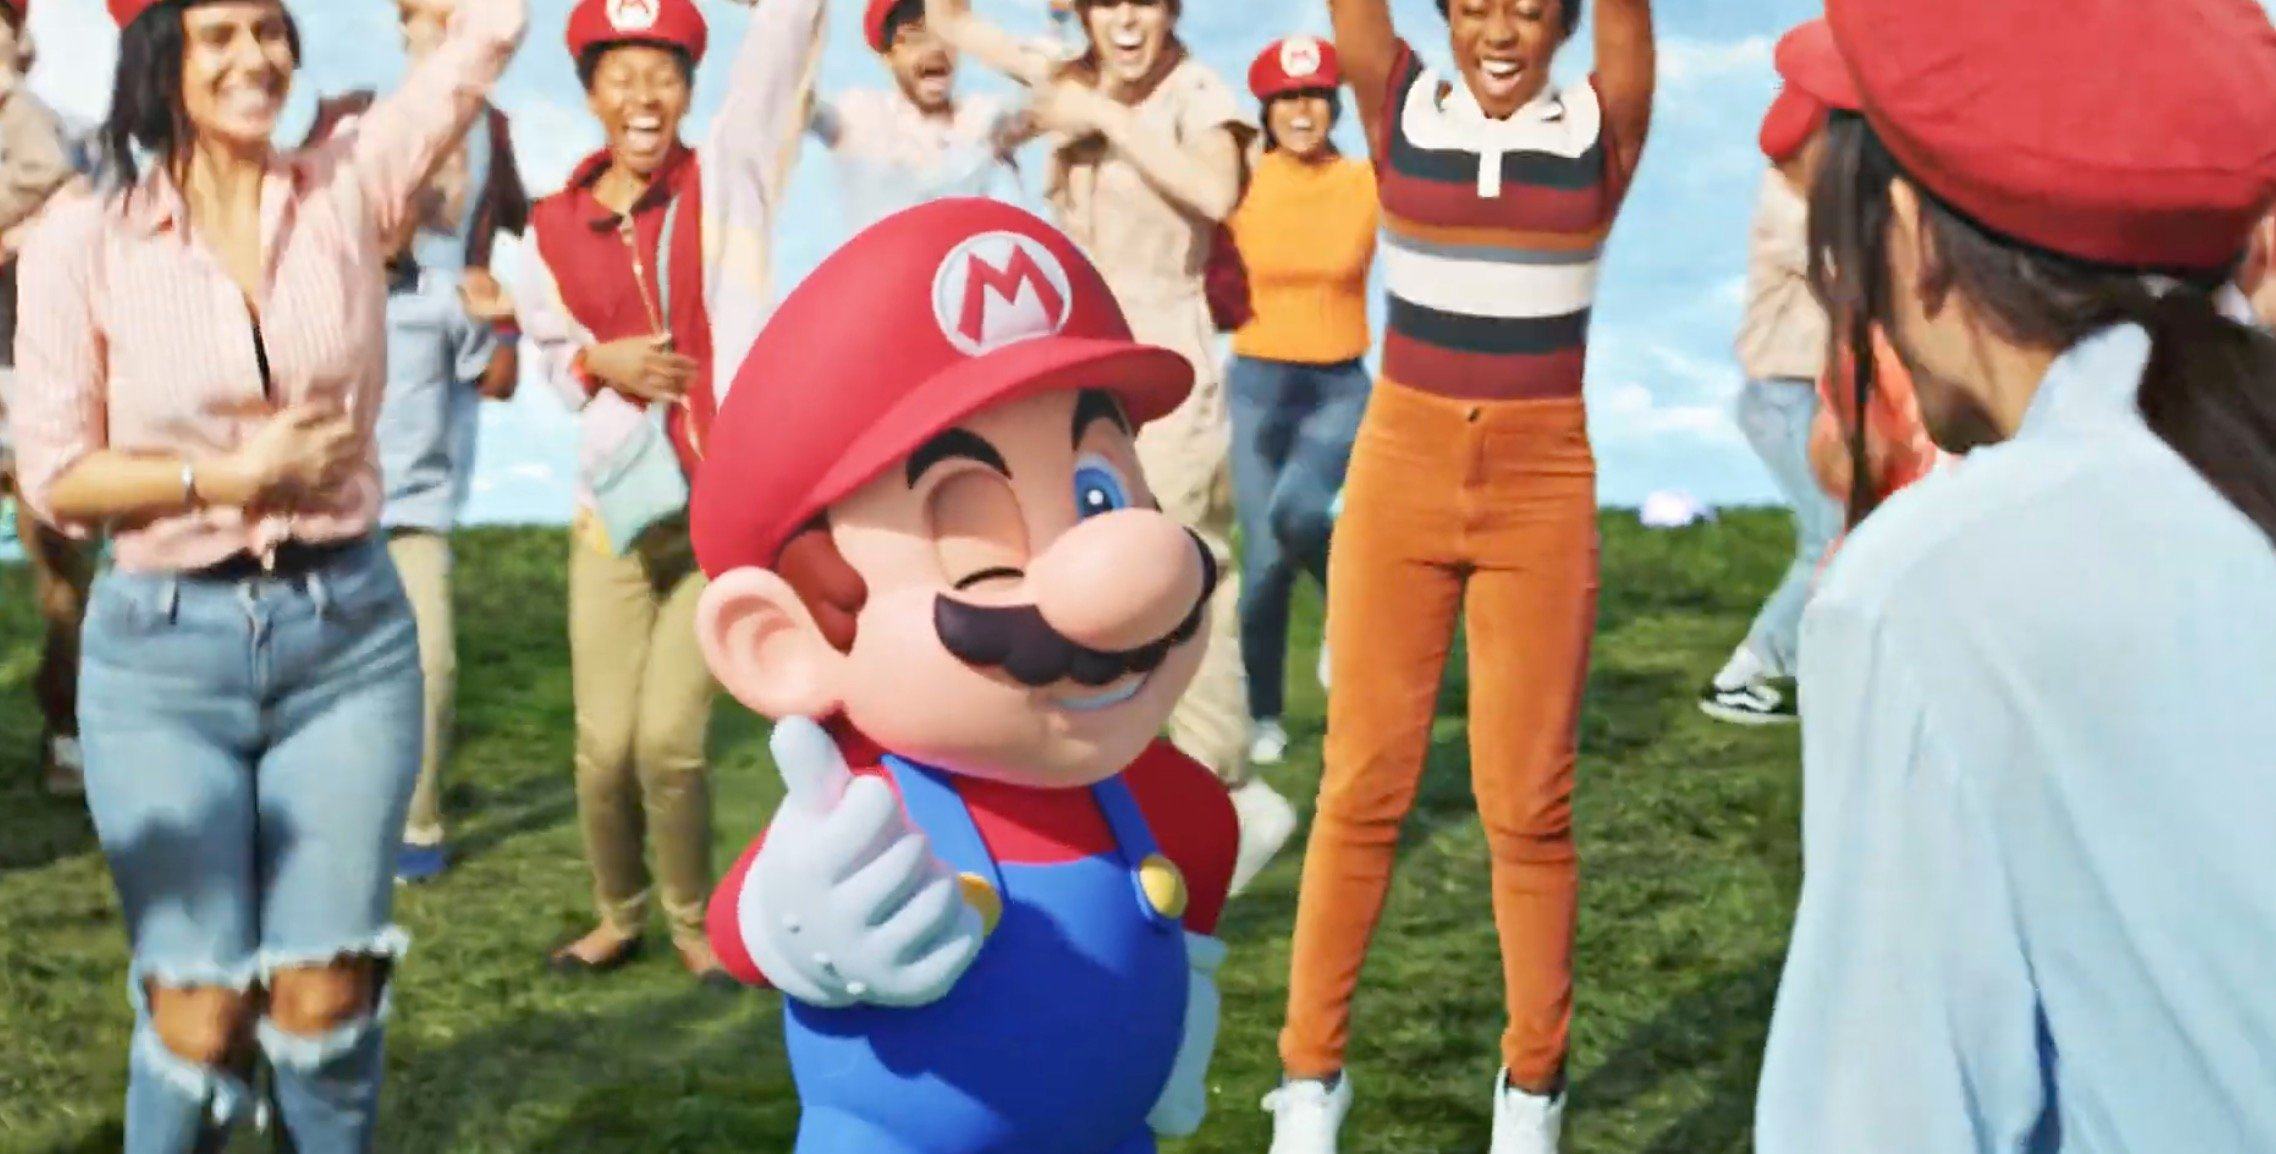 This music video has whet my appetite for Super Nintendo World